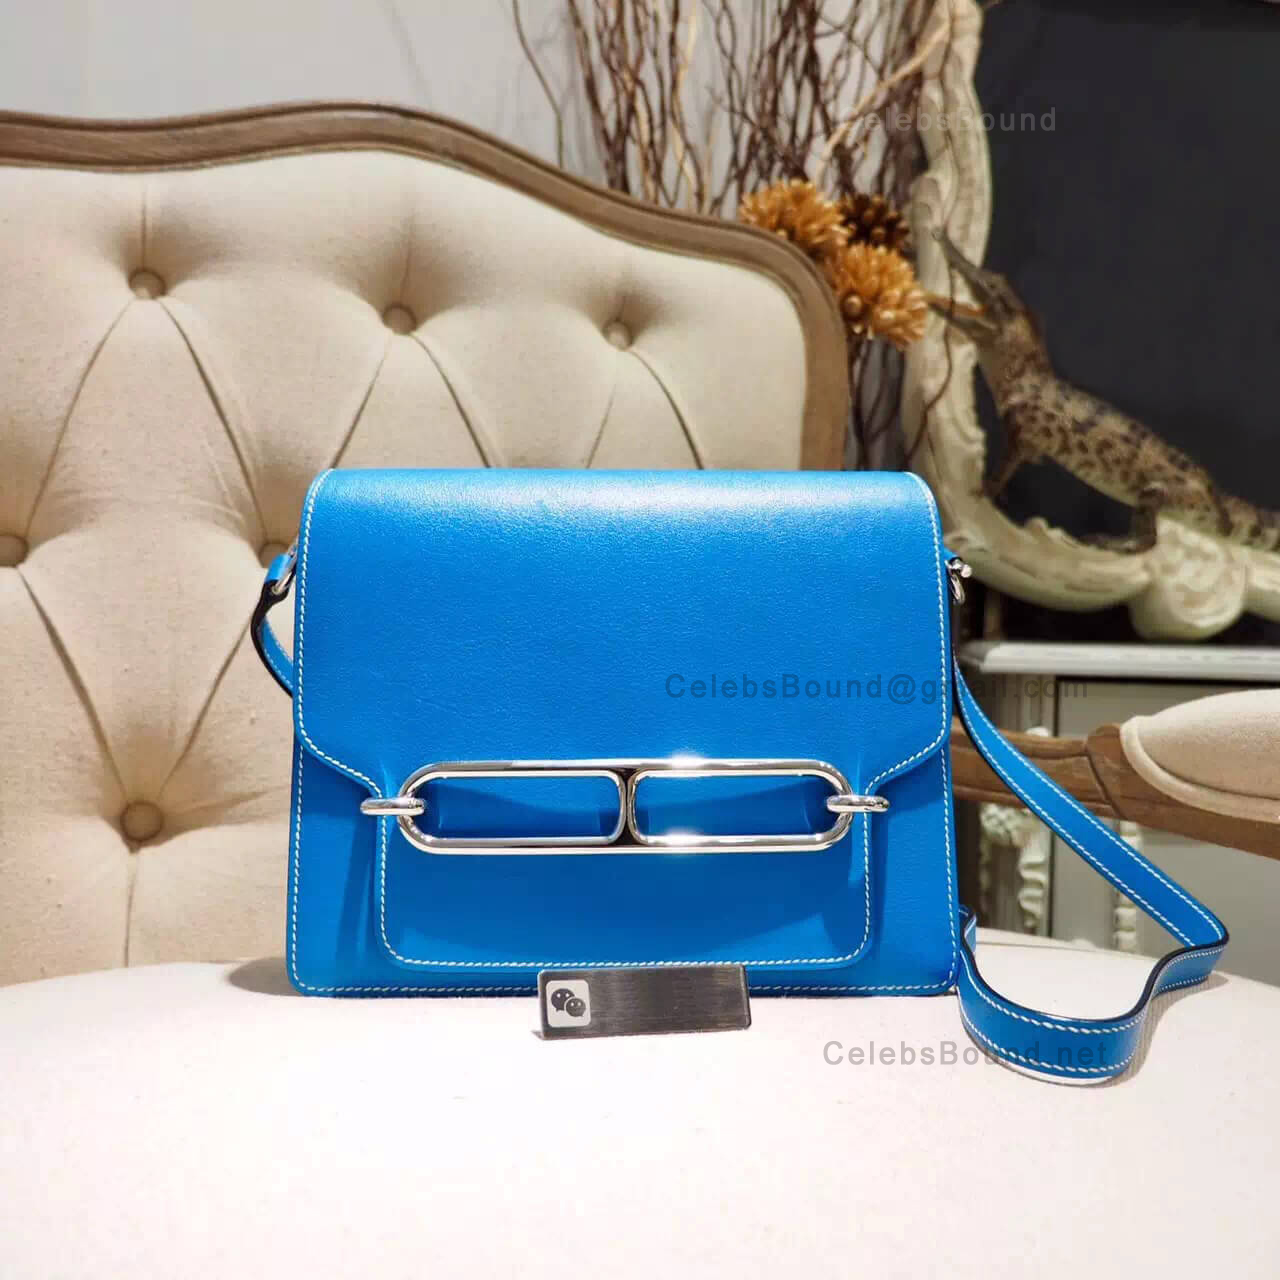 Hermes Roulis 23 Bag White Stitching in t7 Blue Hydra Evercolor PHW